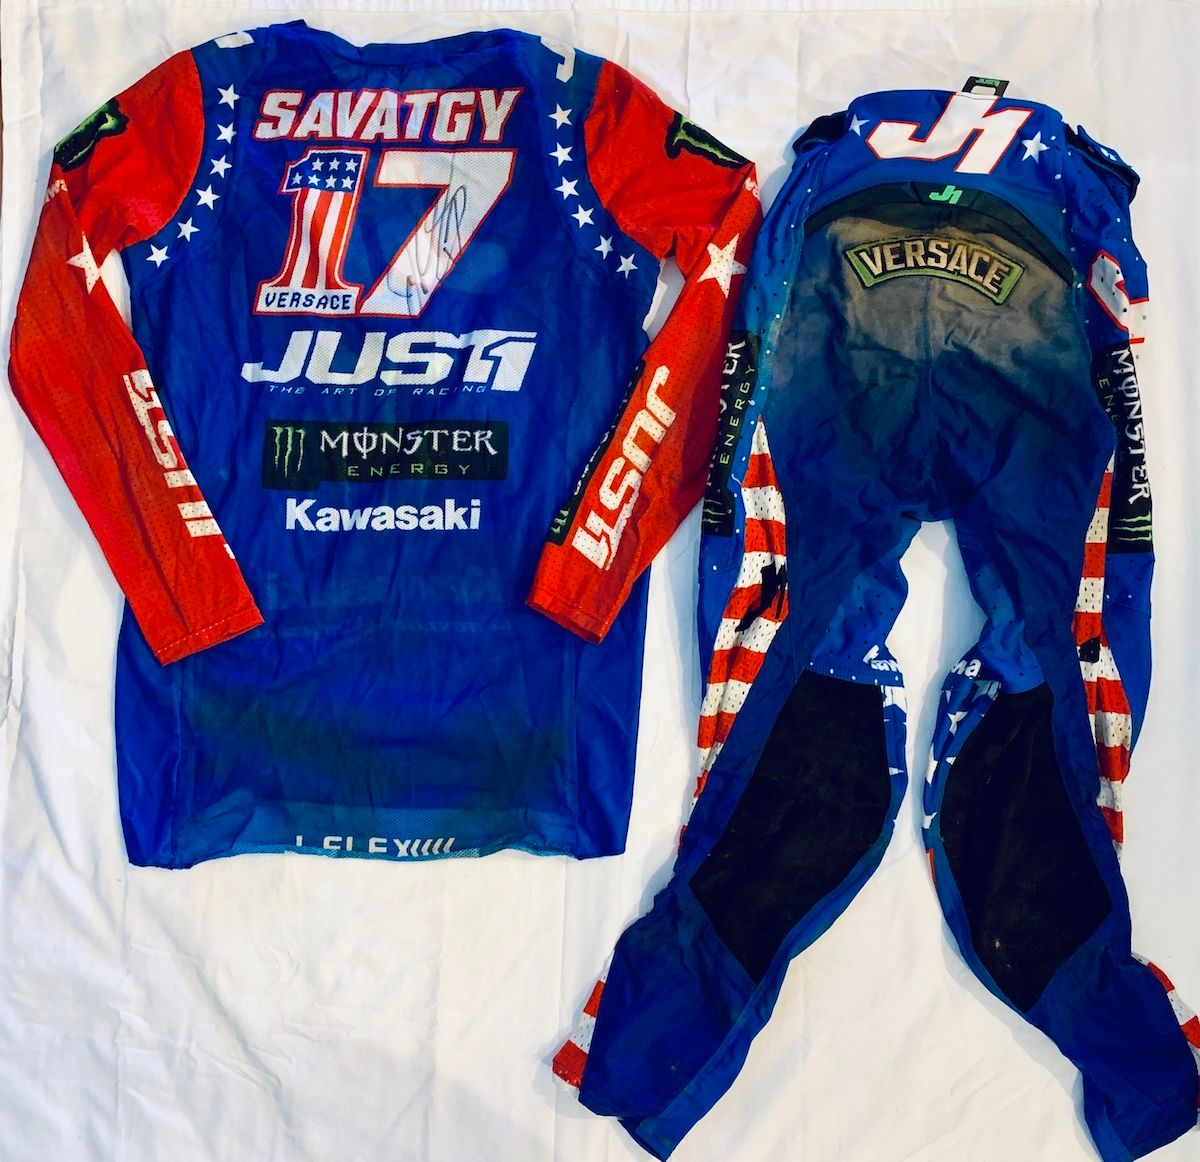 Road 2 Recovery Hosts Motocross Memorabilia Mania eBay Auction Featuring Lucas Oil Pro Motocross Championship [5]